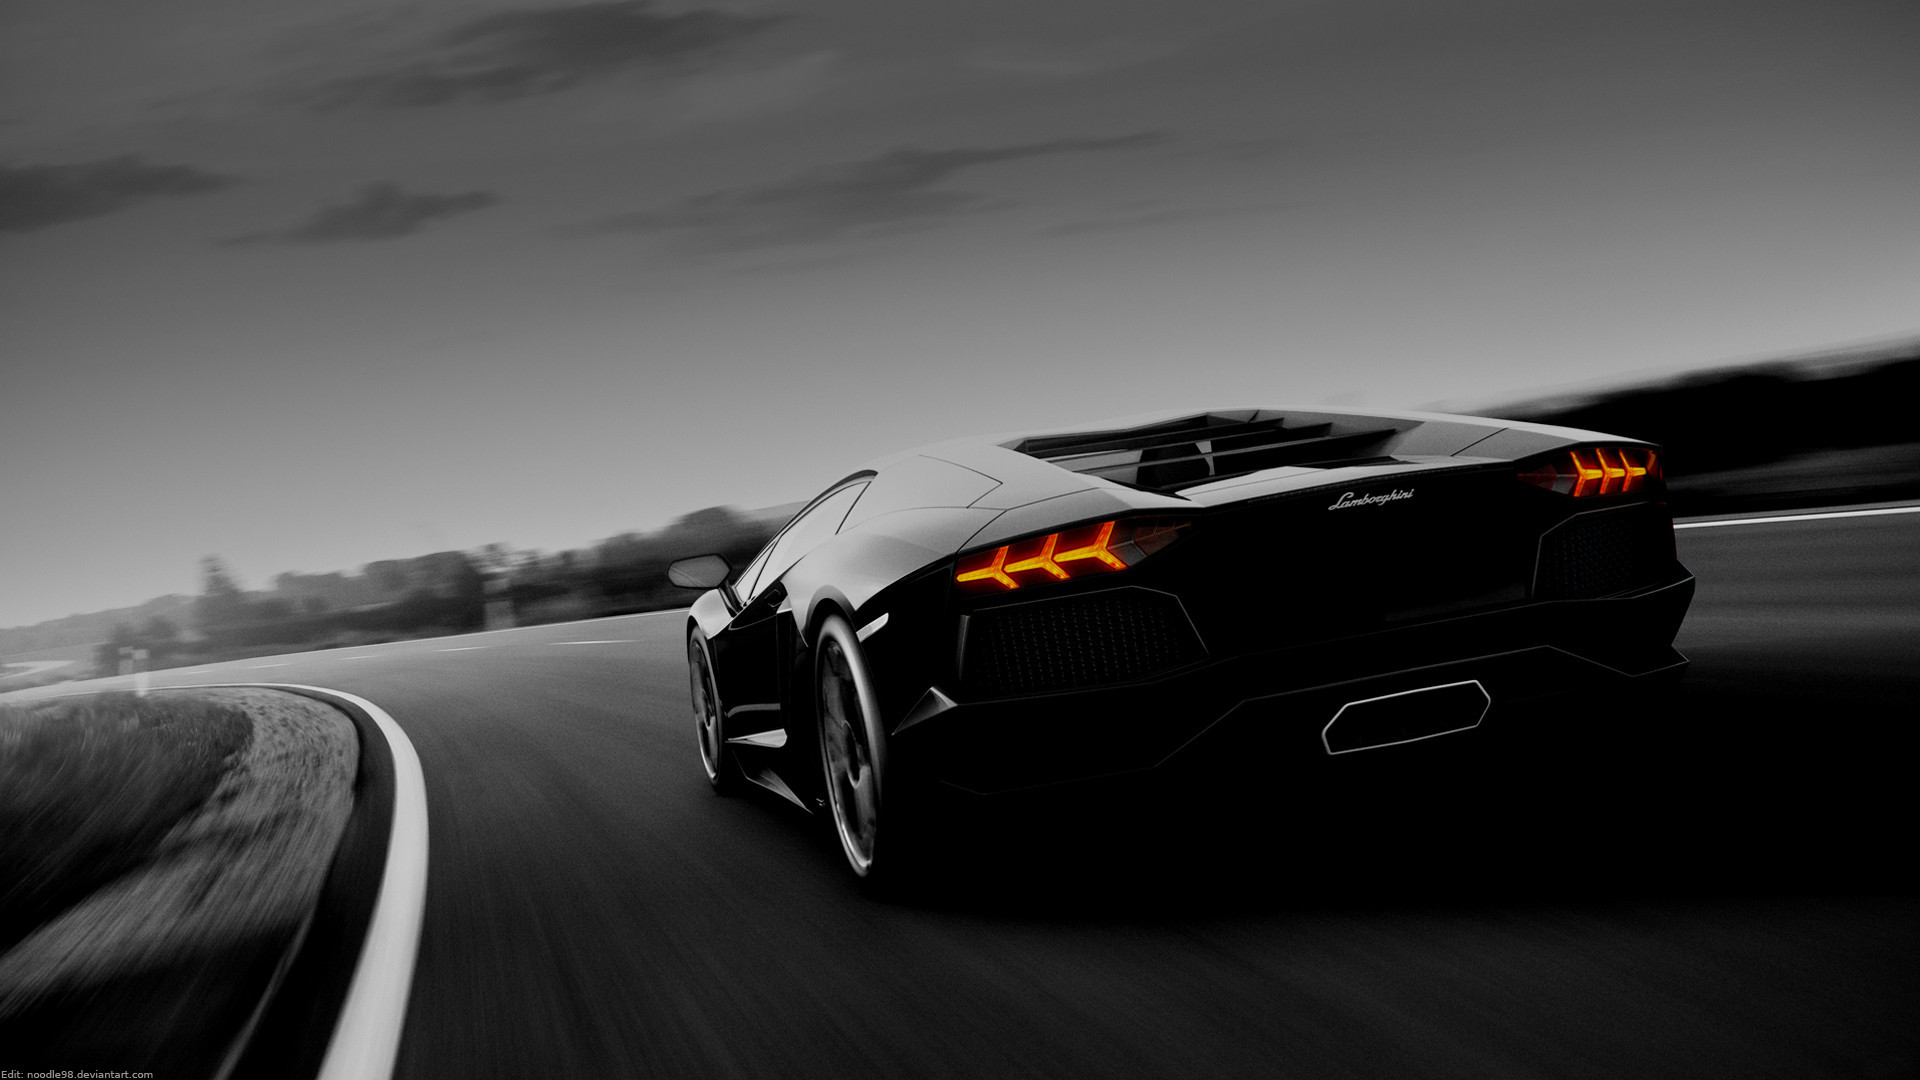 Lamborghini Wallpaper 1080p 74 Pictures